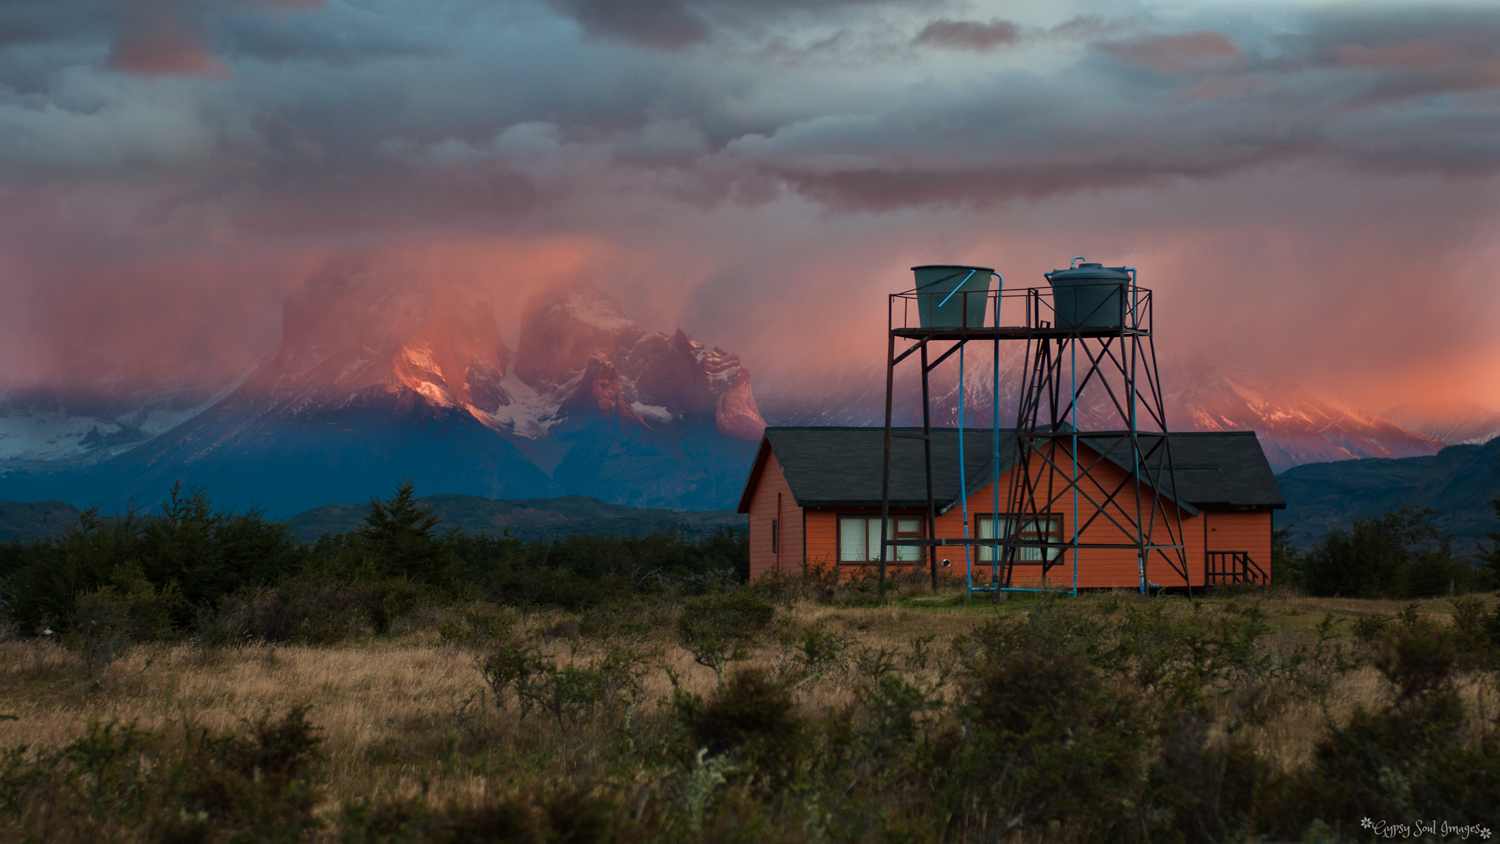 Sunrise over Torres del Paine National Park, Chile Purchase this image in a variety of products from   Red Bubble  .